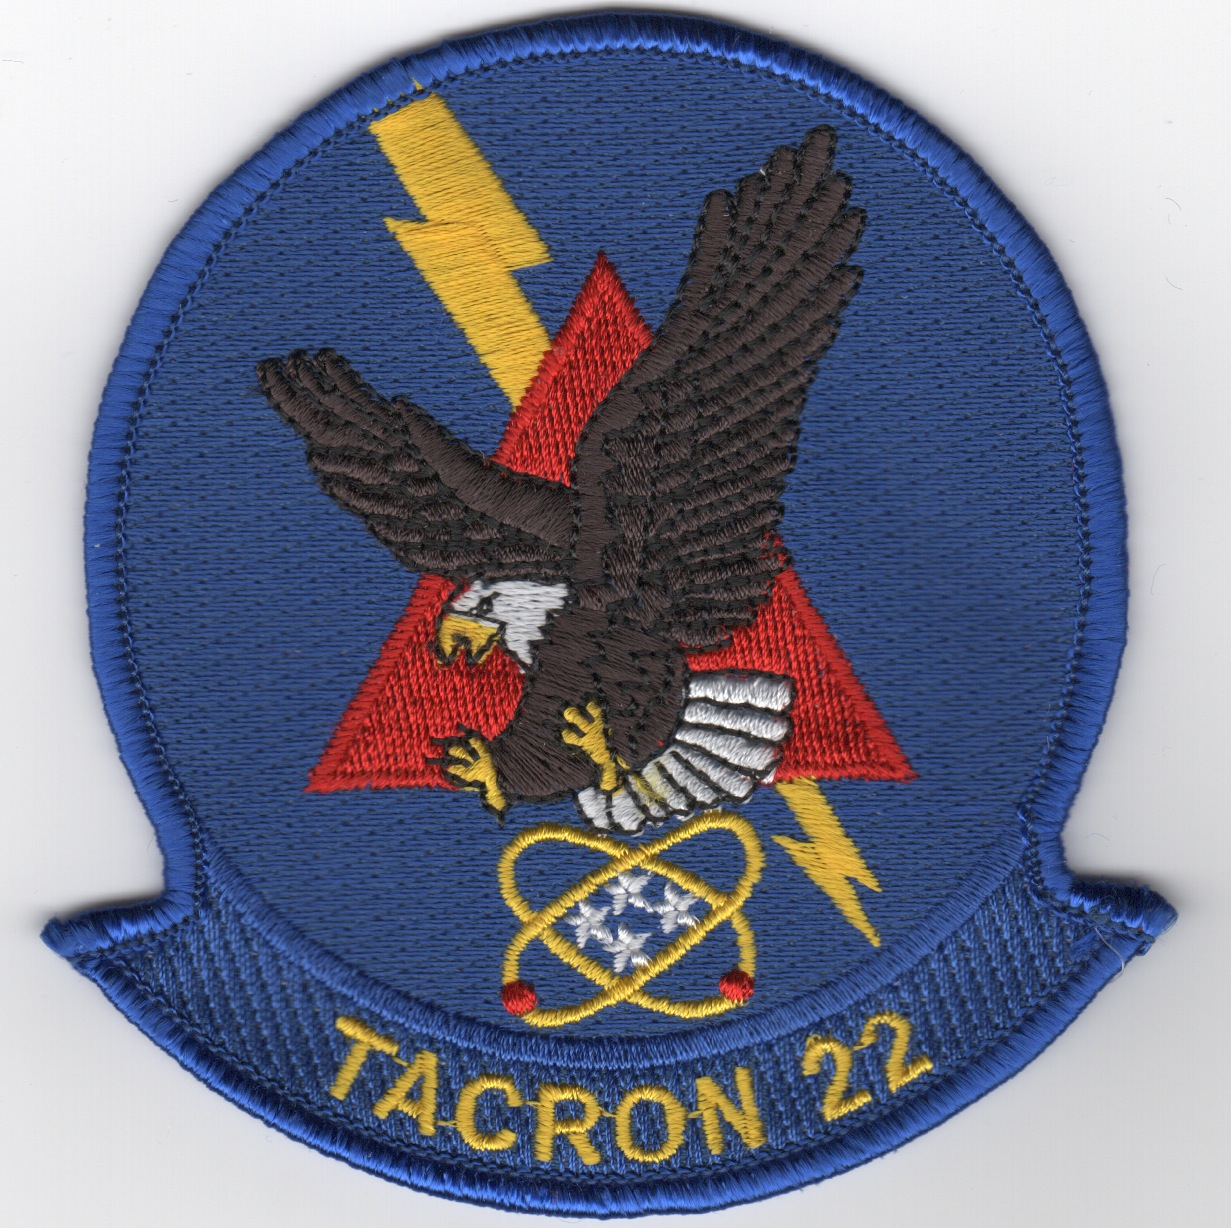 TACRON-22 Squadron Patch (Blue)